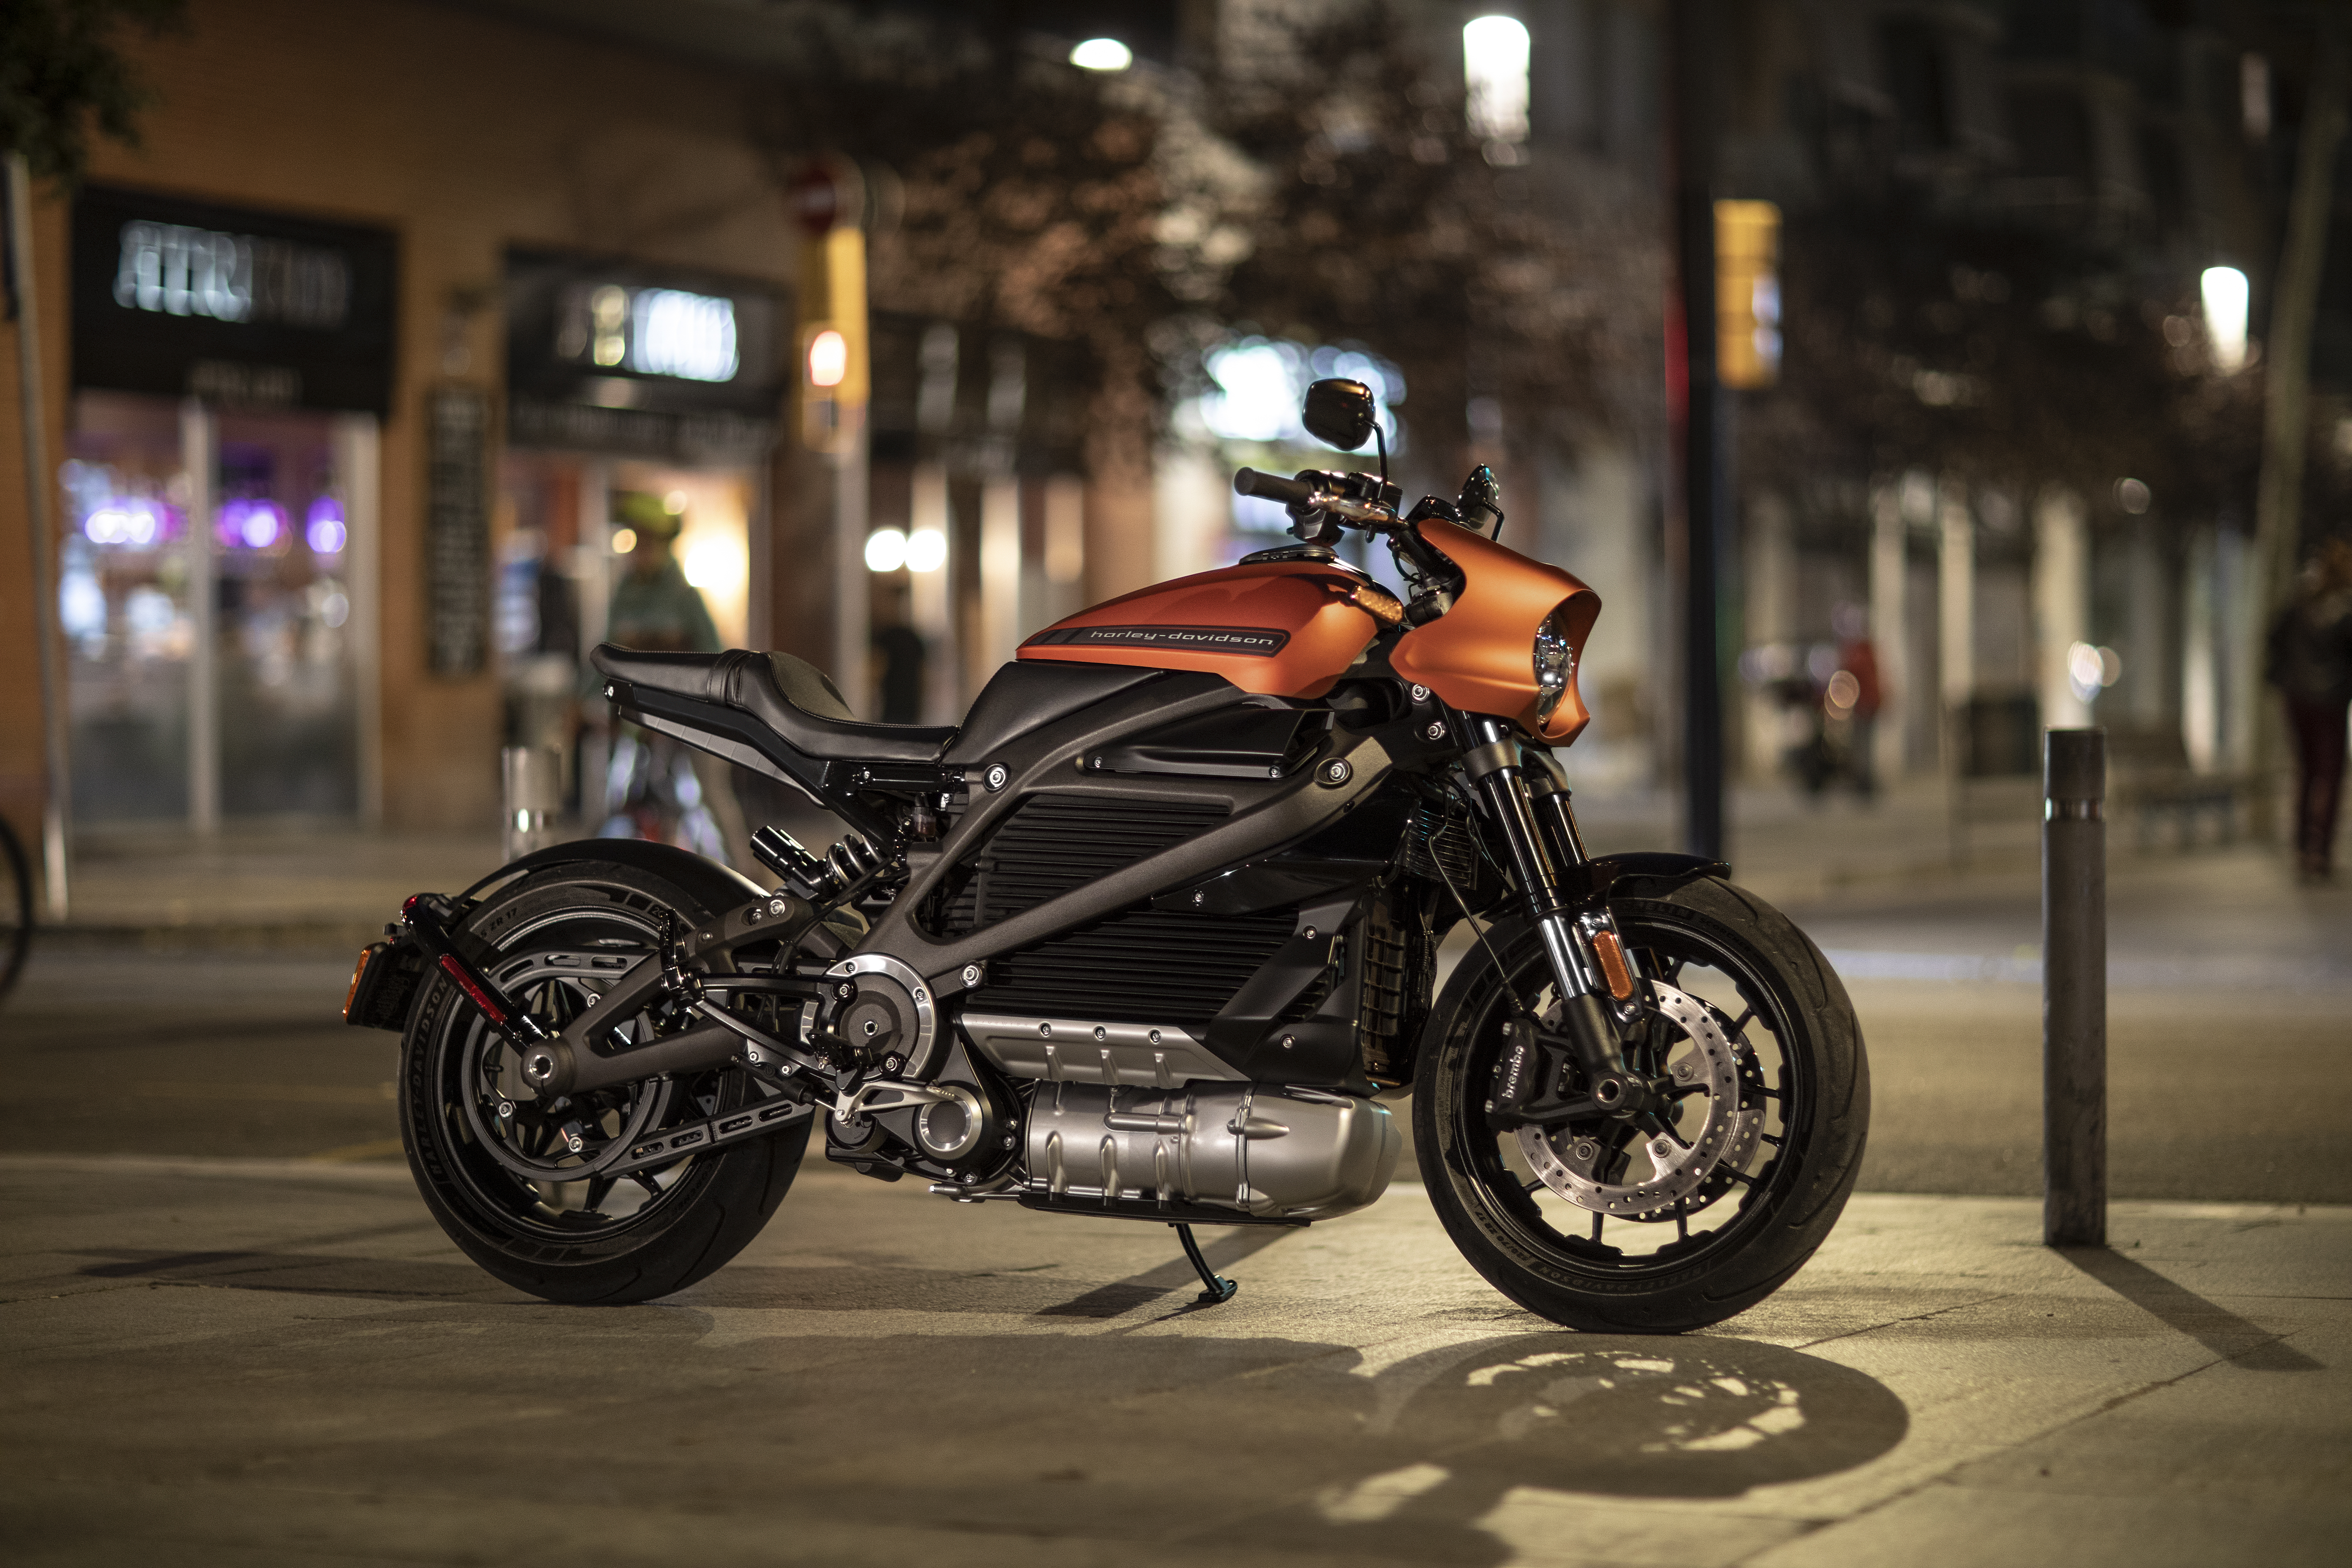 Meet Harley-Davidson's great electric hope: The production